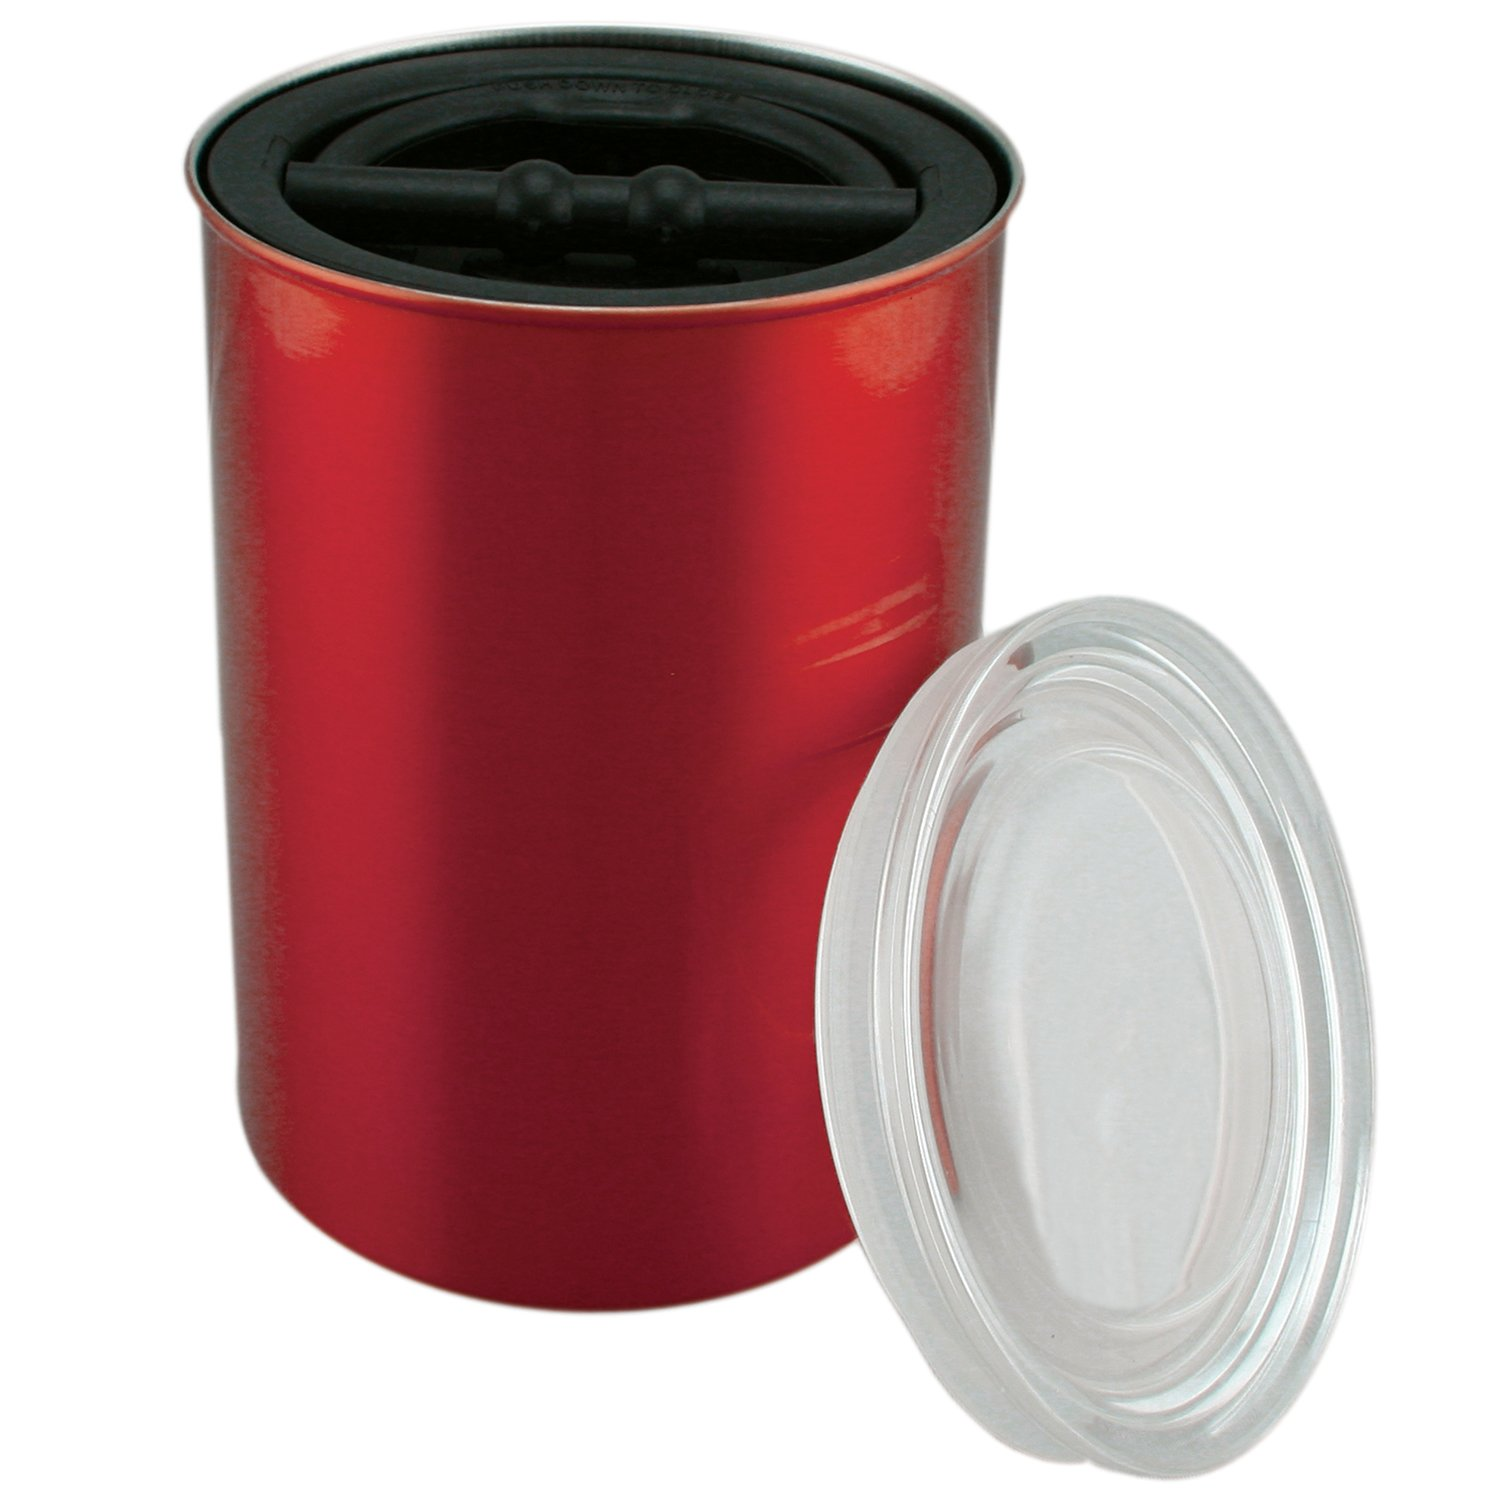 amazon com coffee storage canister airtight container preserves